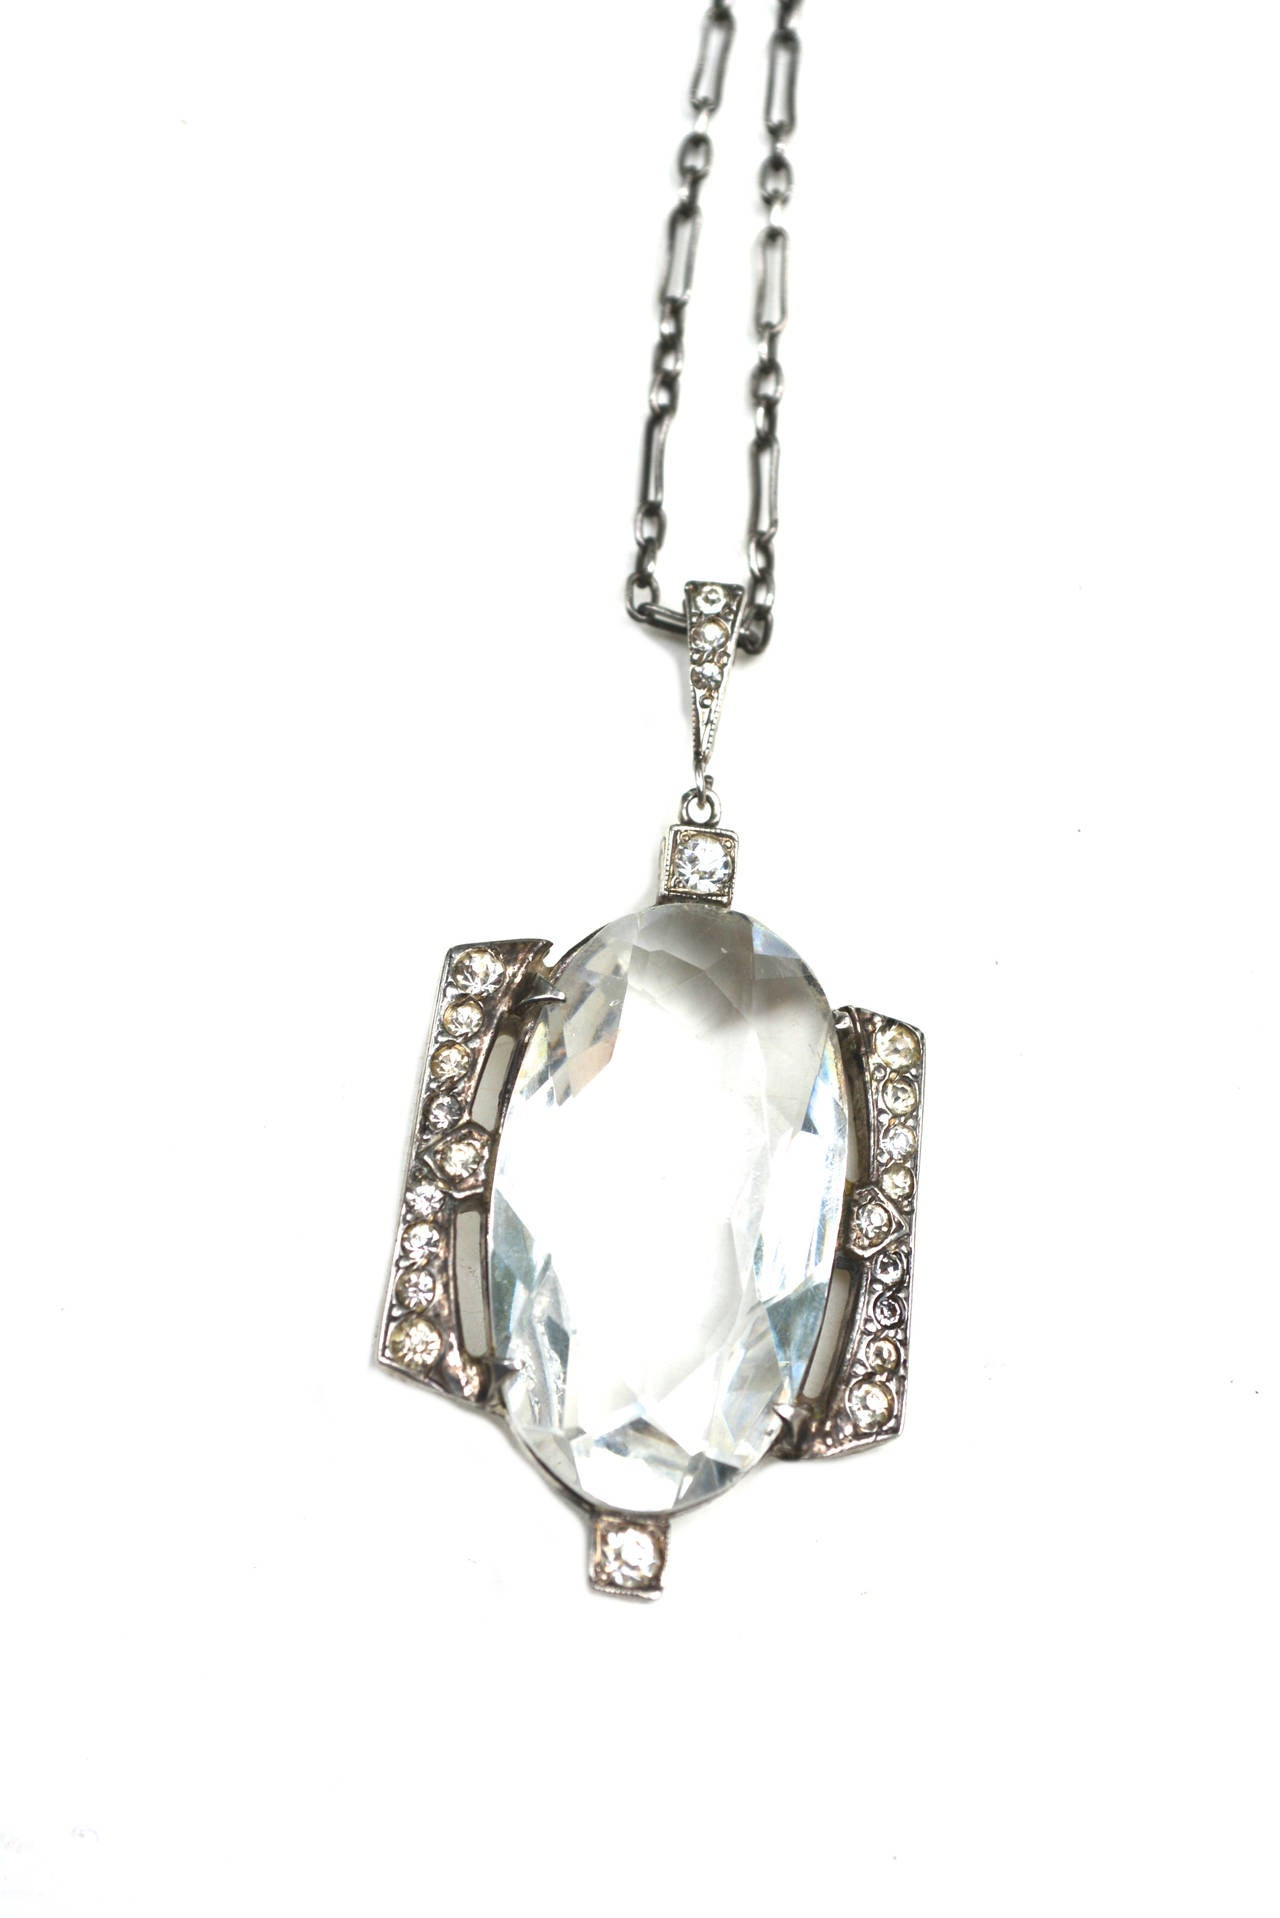 1920s Glass and Sterling Necklace at 1stdibs